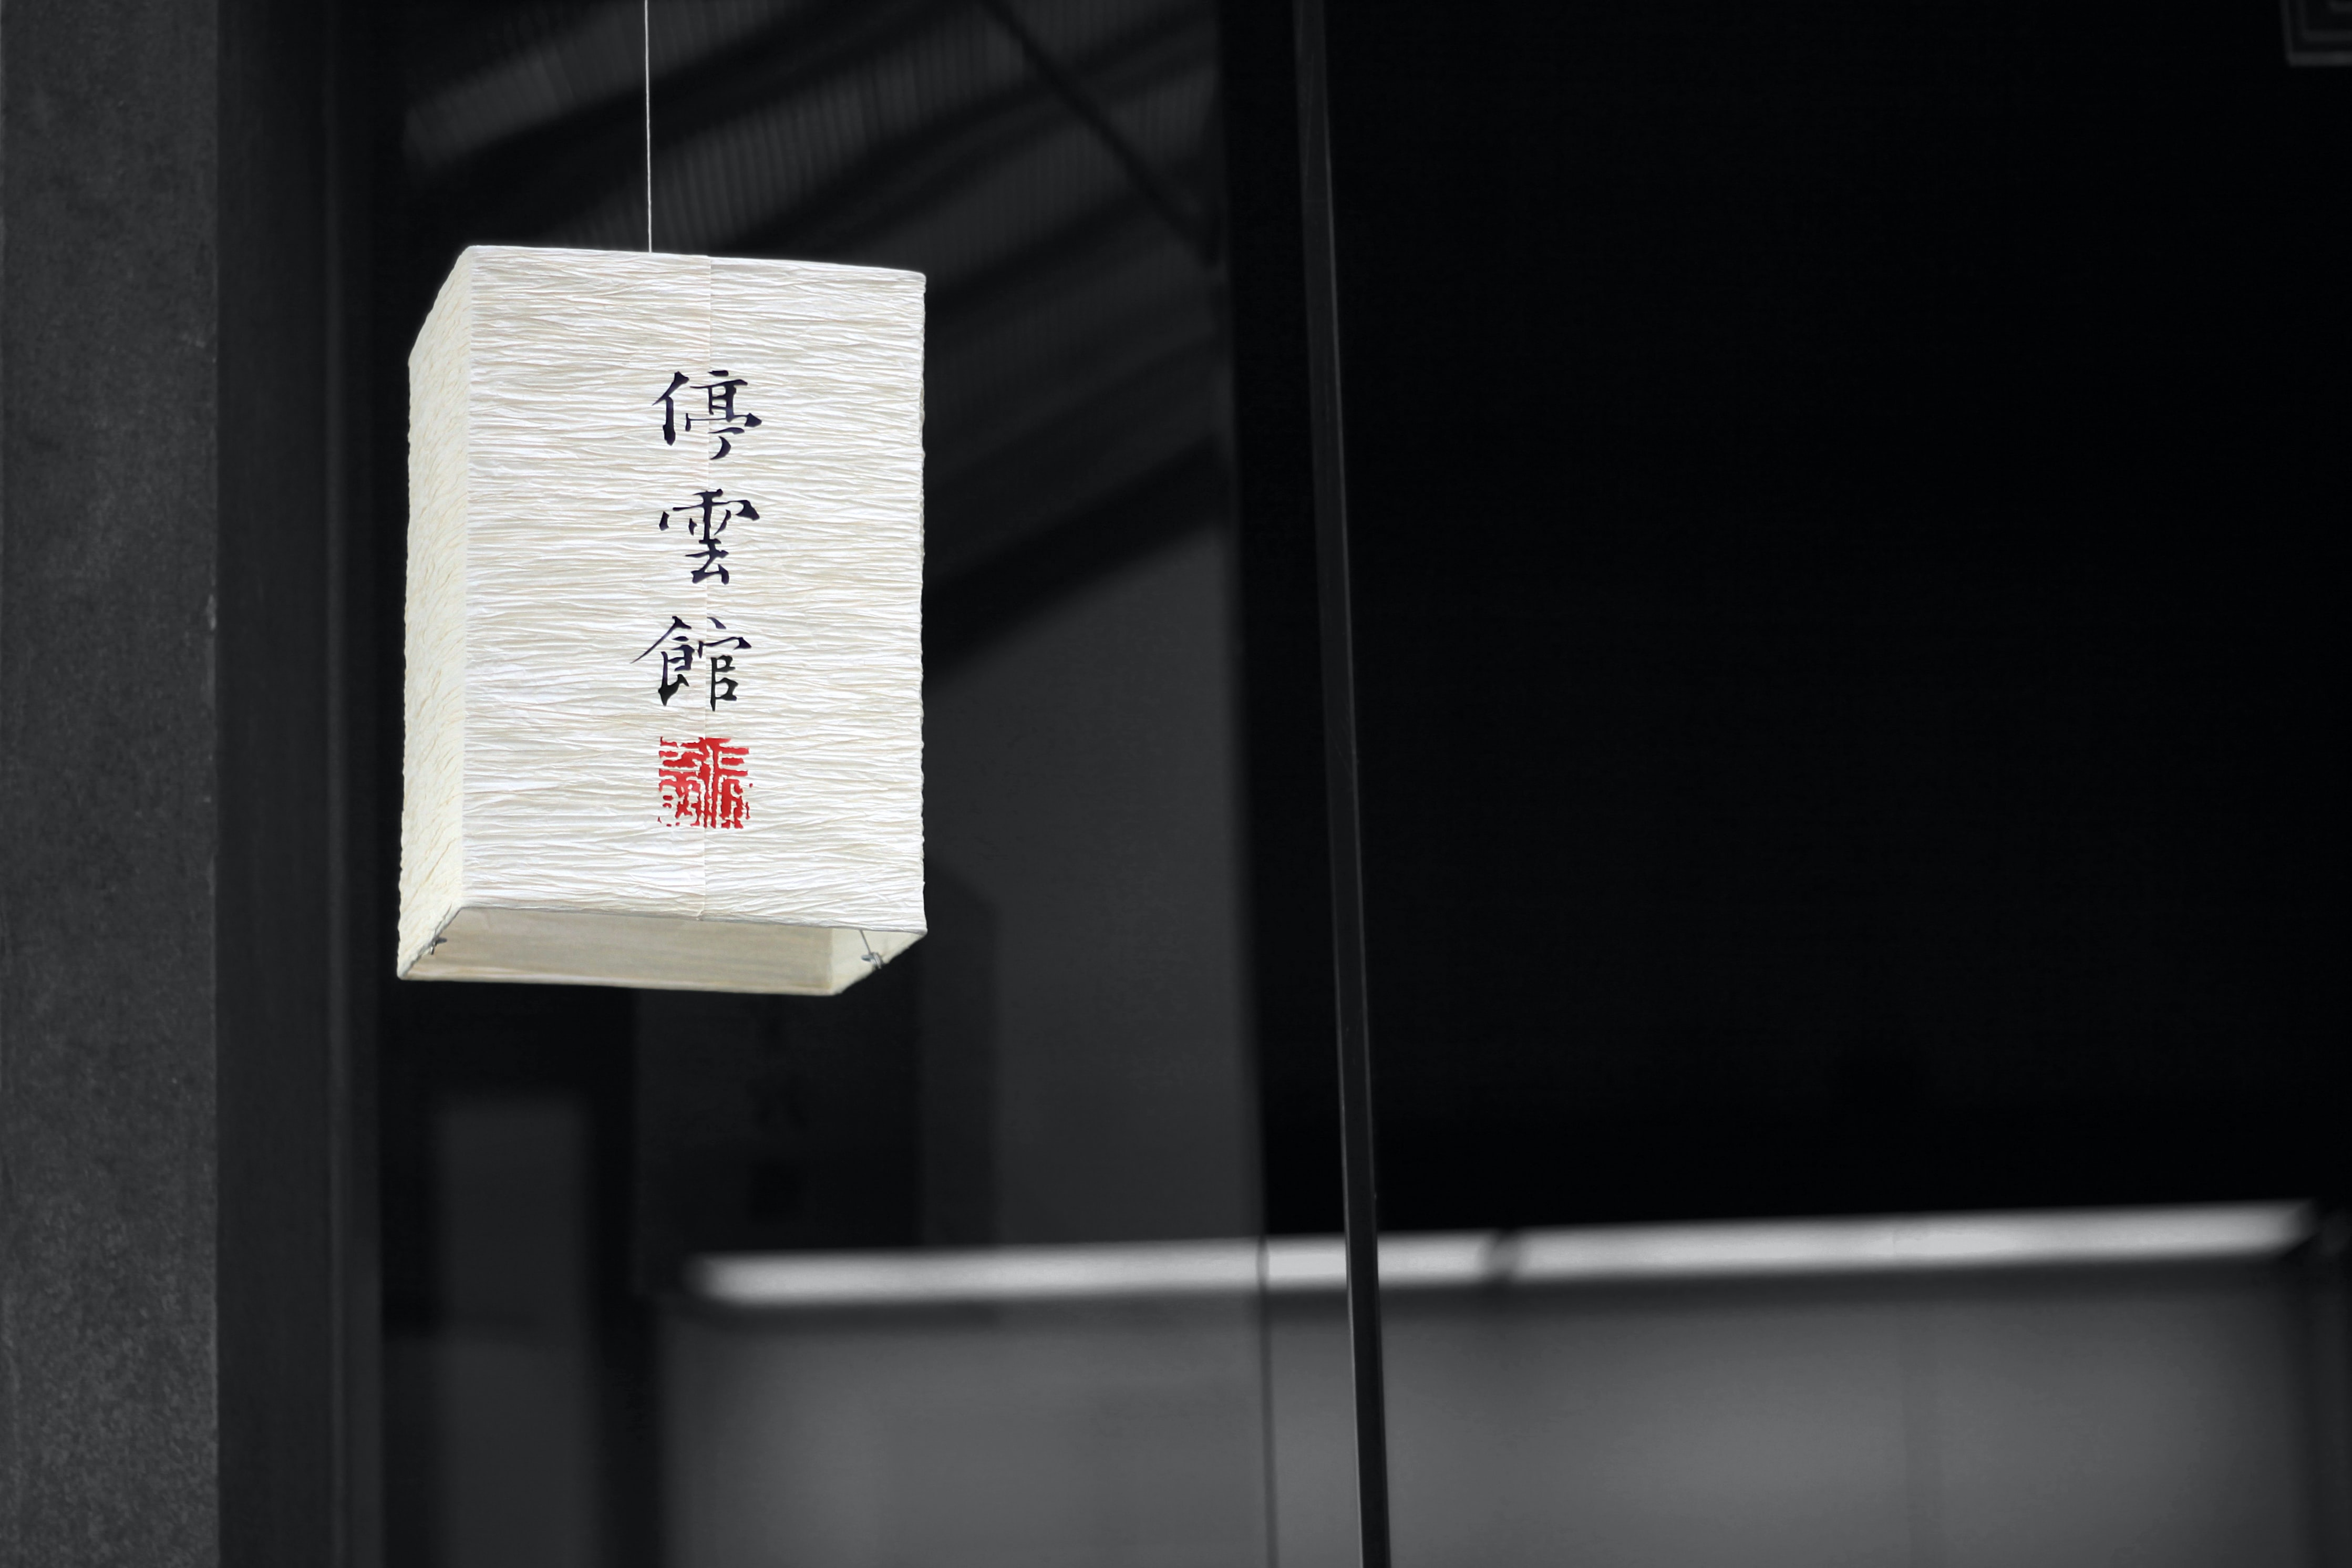 Chinese characters on a paper lantern hanging from a ceiling